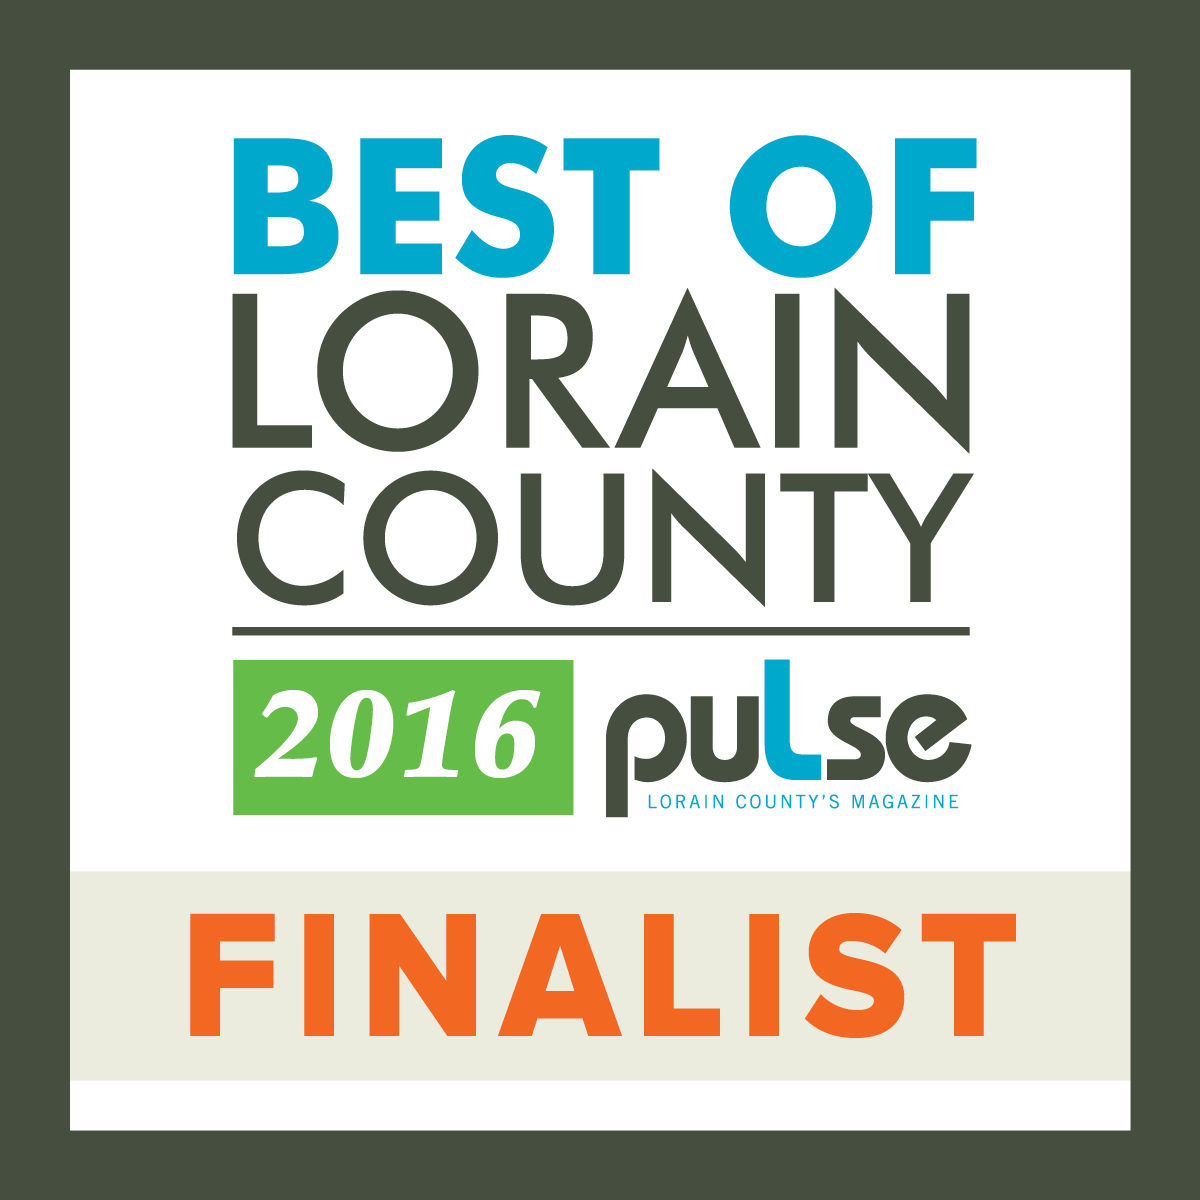 Best of Lorain County!